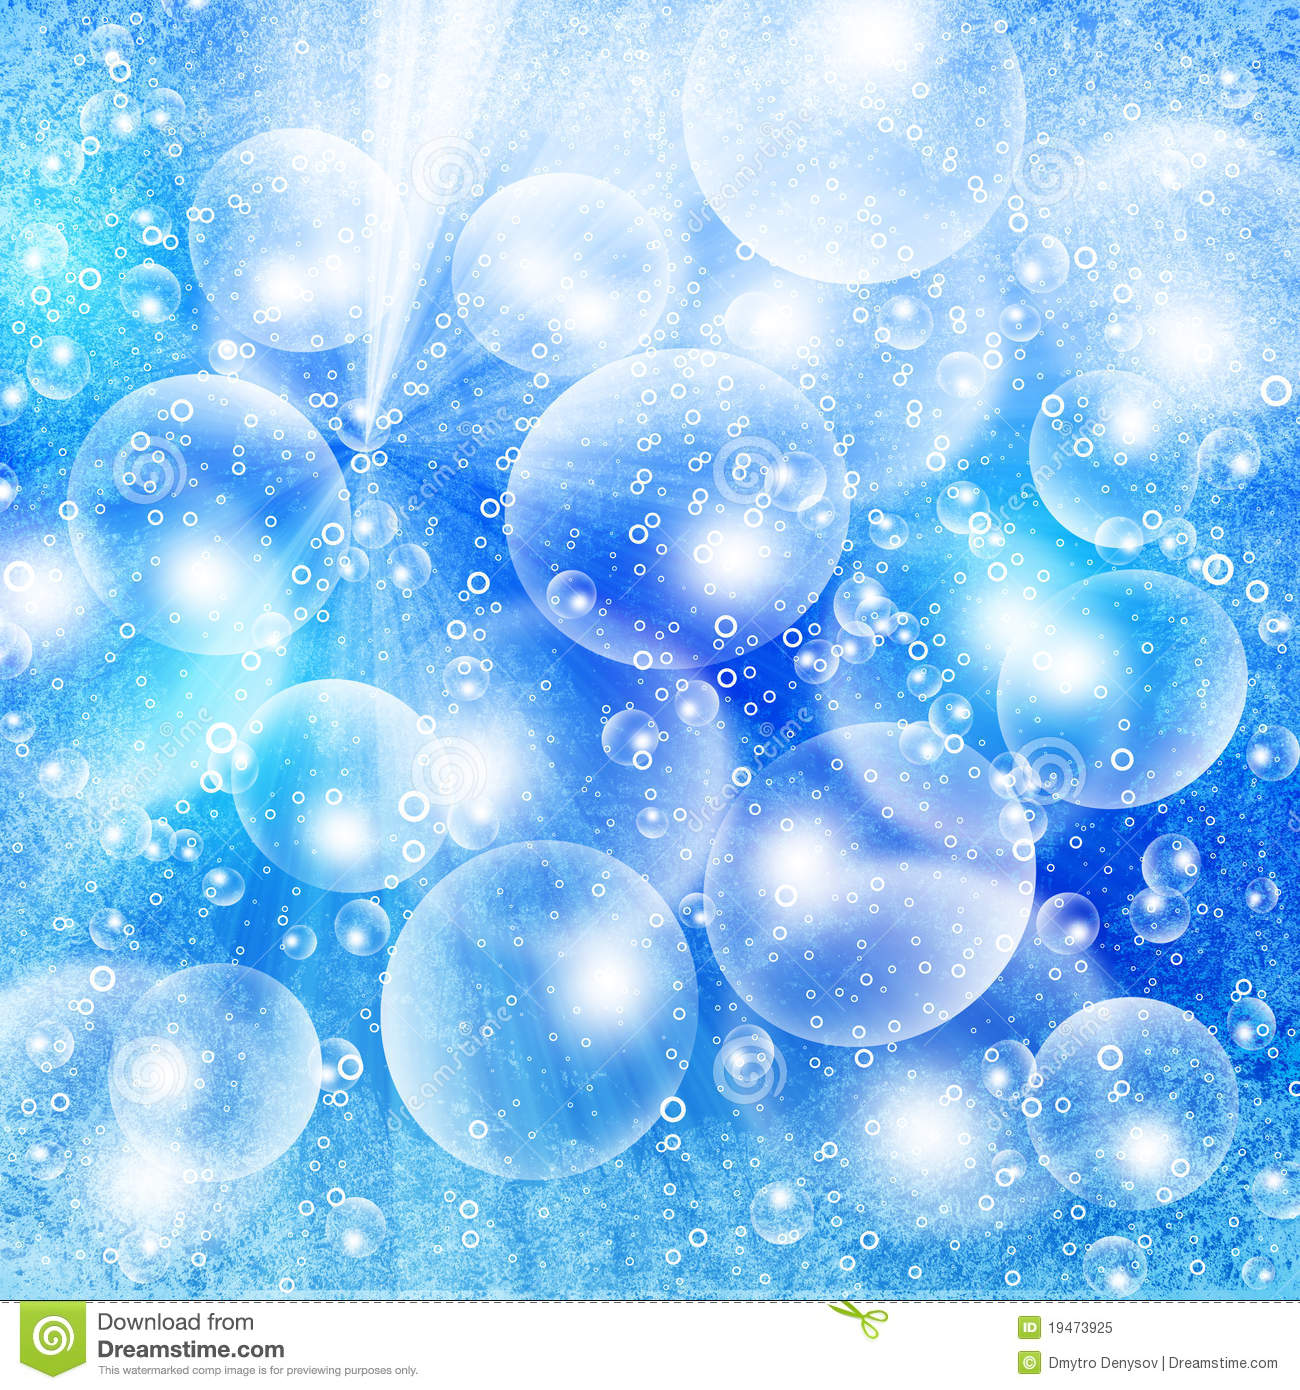 Light Bubbles On A Blue Grunge Royalty Free Stock Photo ...